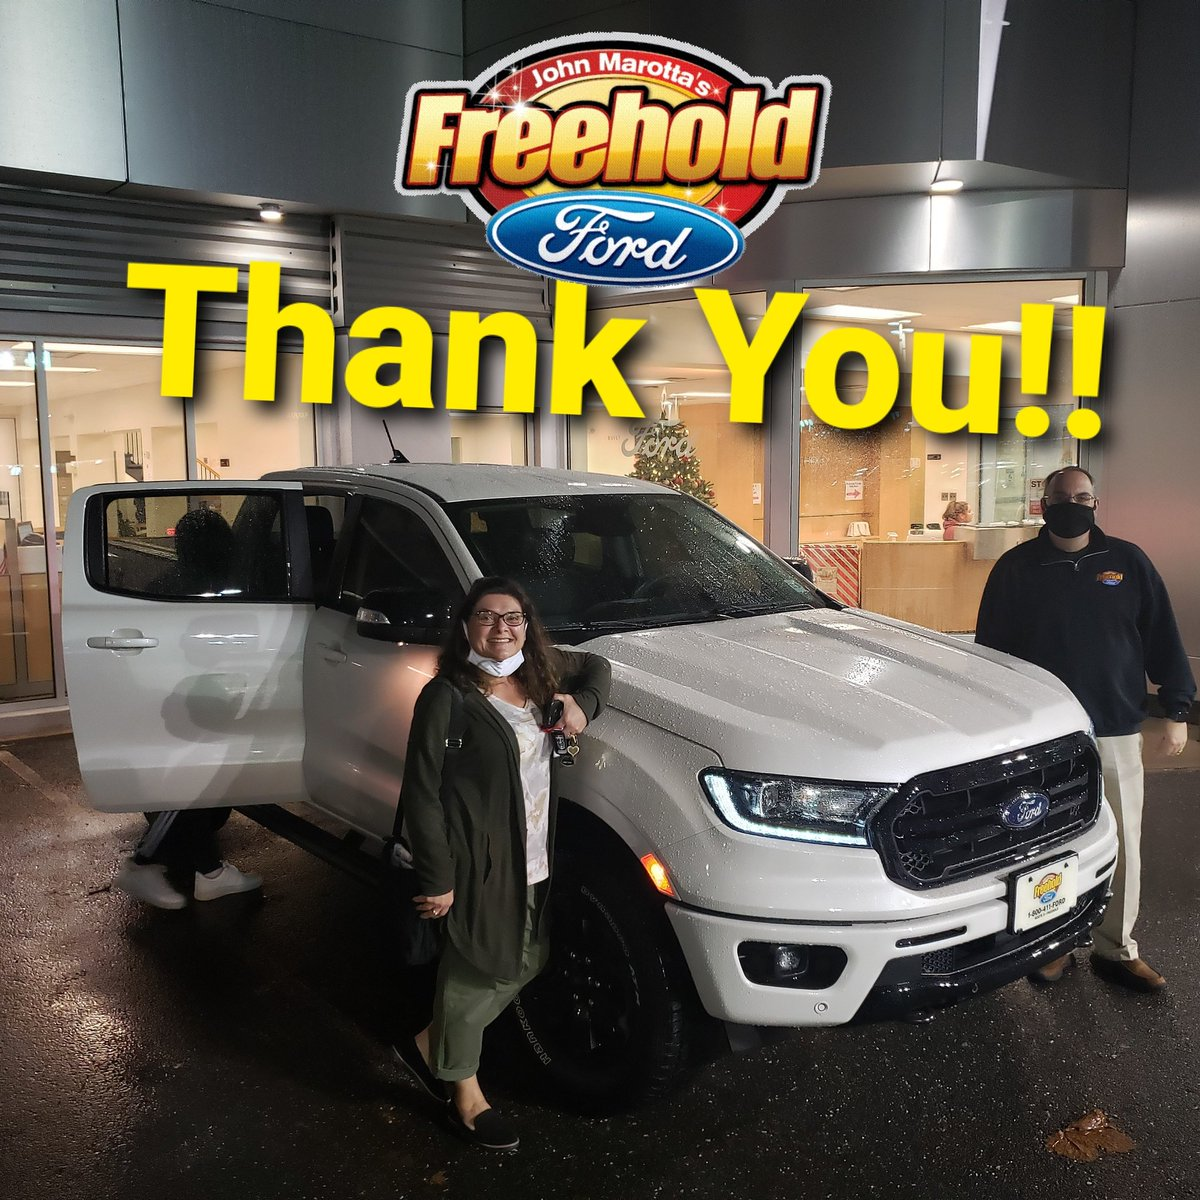 Congratulations Teresa, on your awesome new Ford Ranger from Freehold Ford!!  #freeholdford #fordperformance #FORDMOTORCOMPANY #ford #freeholdfordfamily #freeholdtownship #ranger #fordranger @FreeholdFord @Ford @FordPerformance https://t.co/Gx4SLftkUf